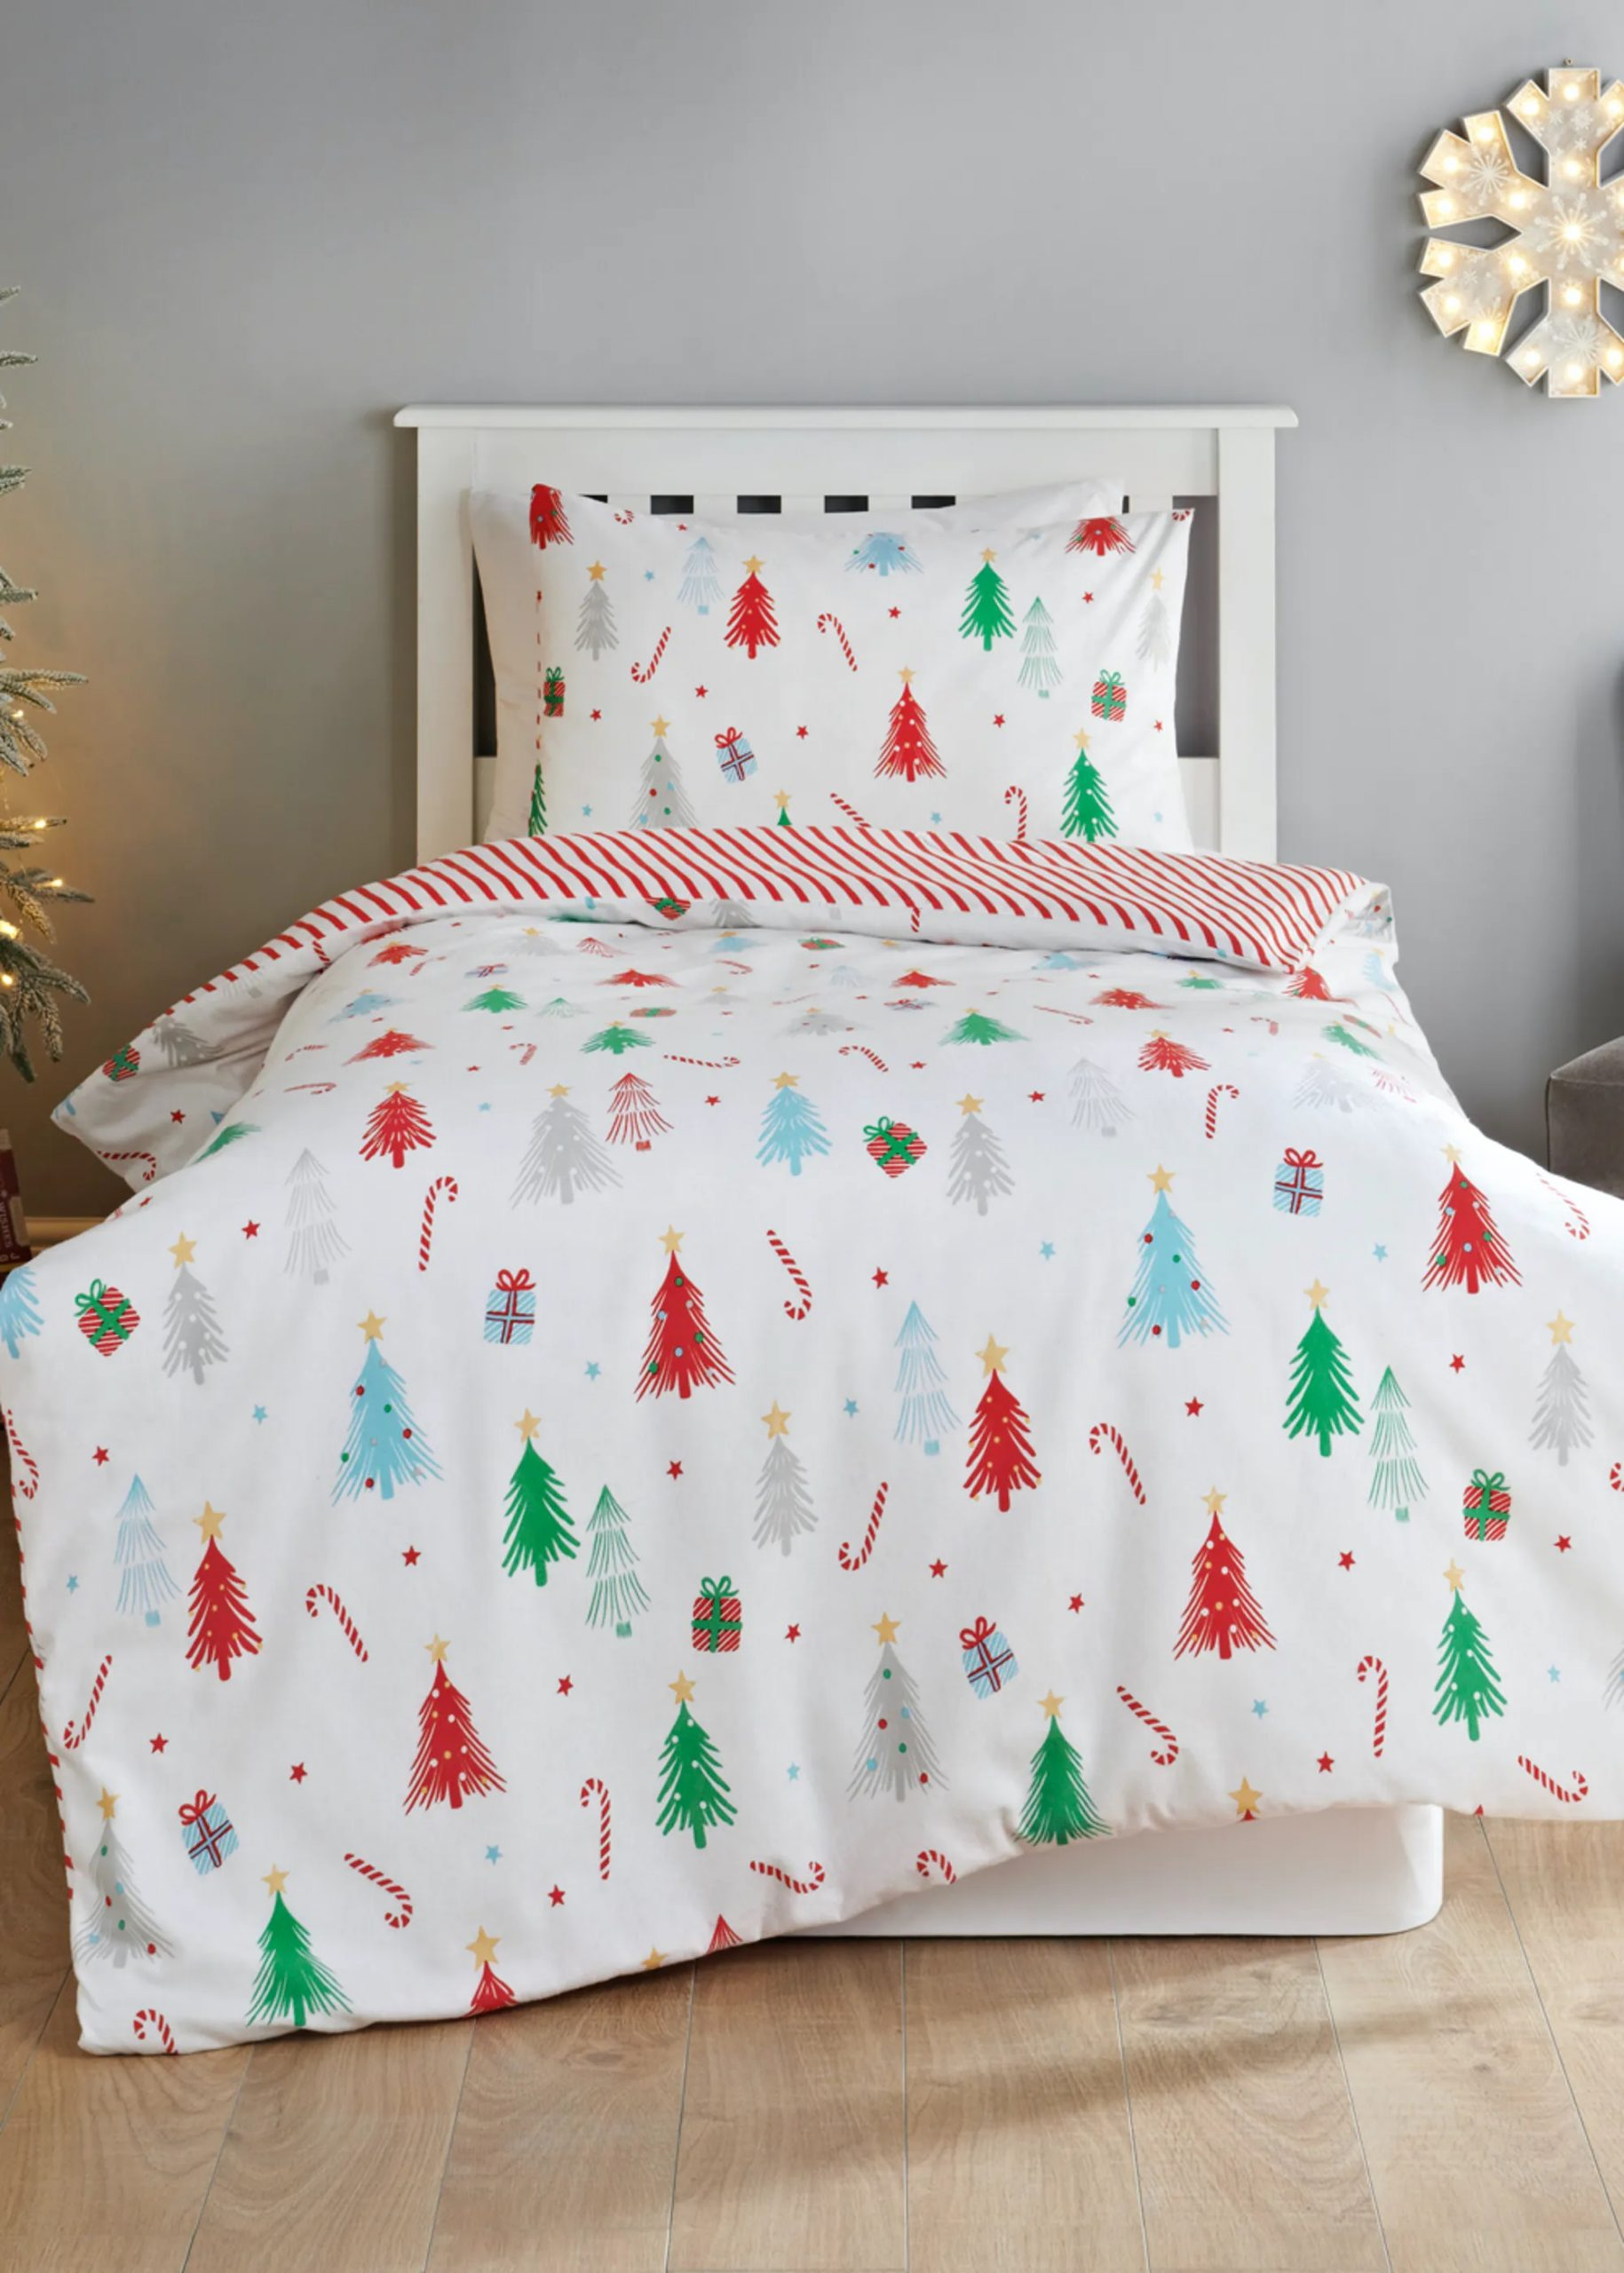 The best Christmas bedding on the market